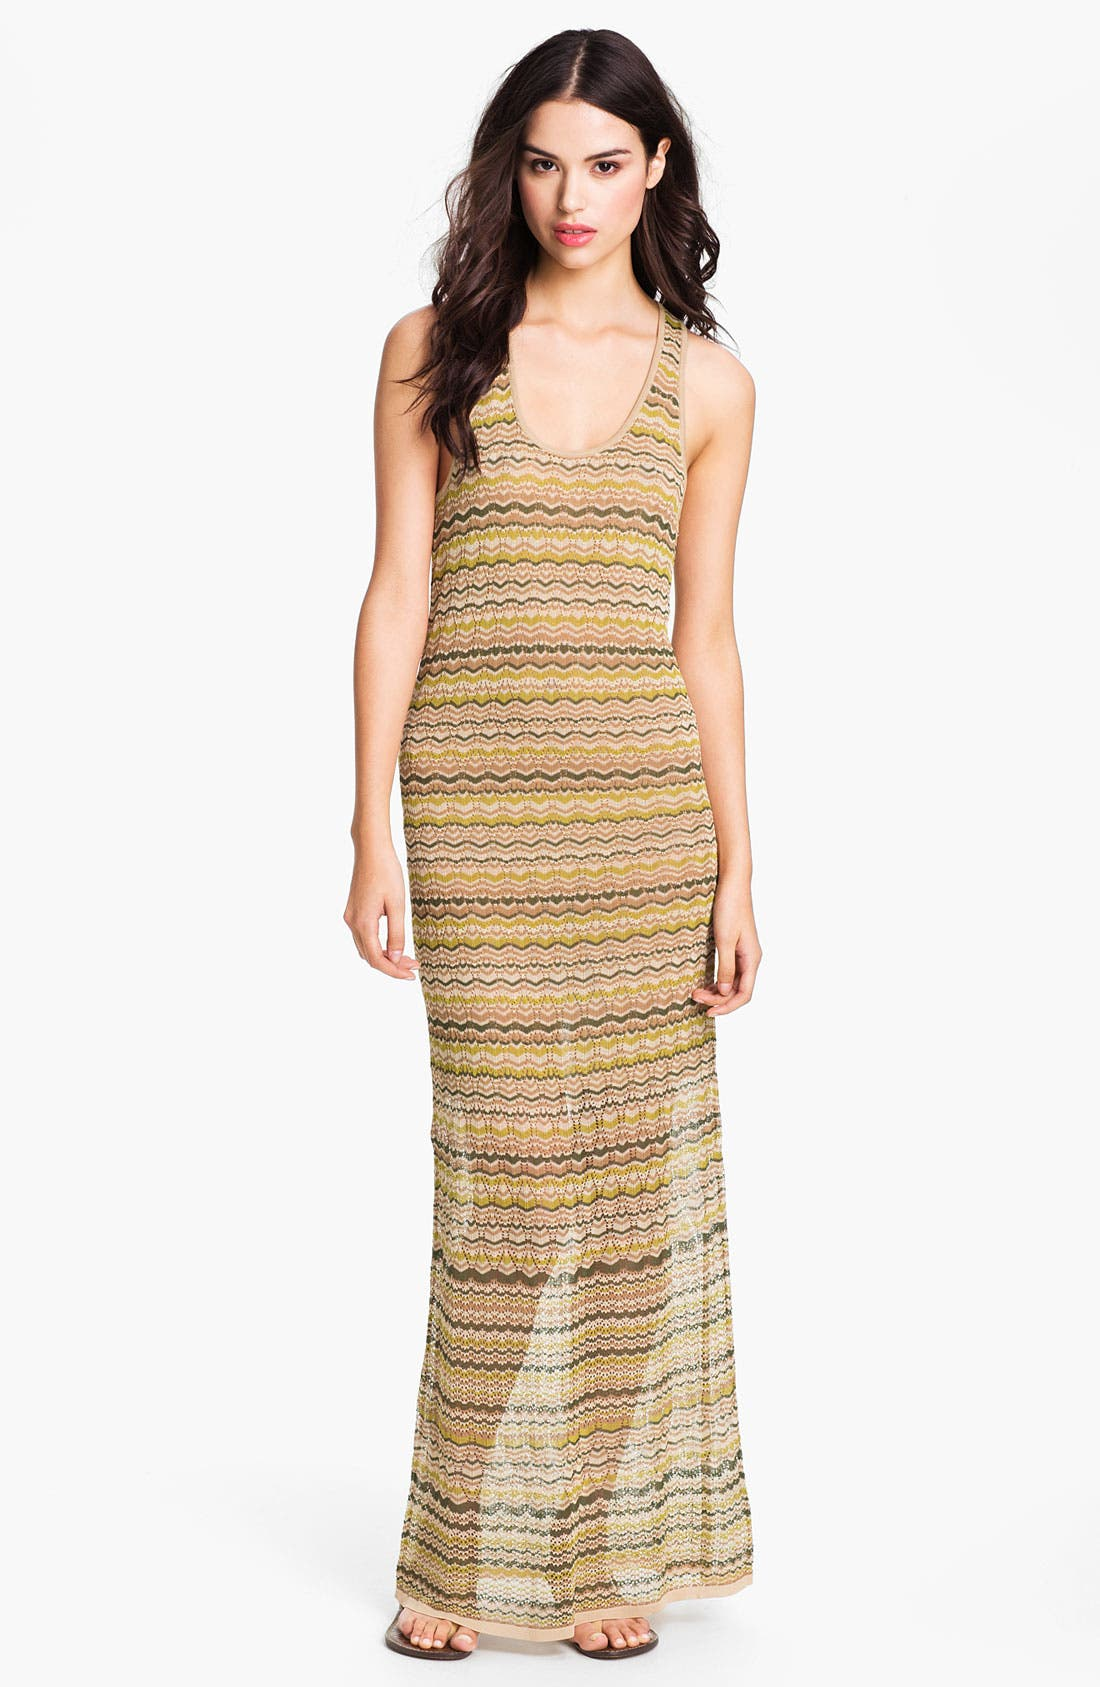 Alternate Image 1 Selected - Haute Hippie Flame Knit Racerback Maxi Dress